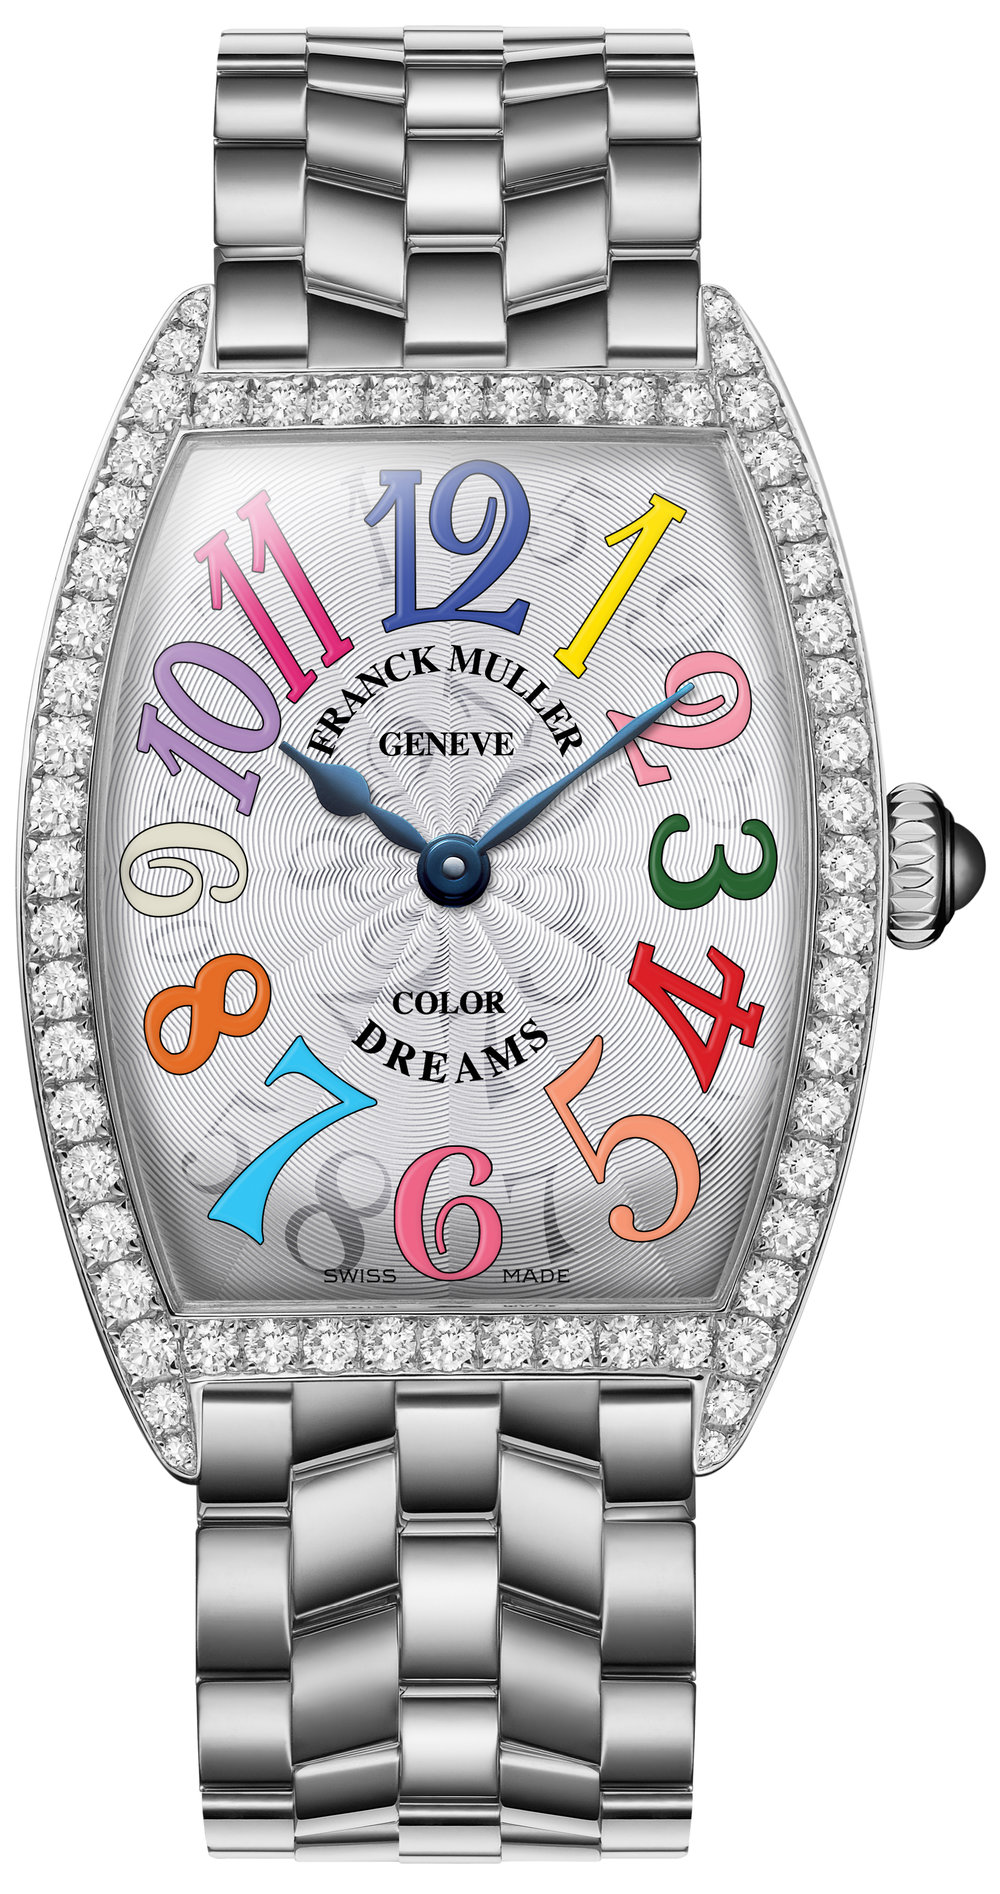 Cintree Curvex, quartz, ladies, 1 row diamond case, color dreams dial, stainless steel case, white dial, on steel bracelet.  $11,990.00